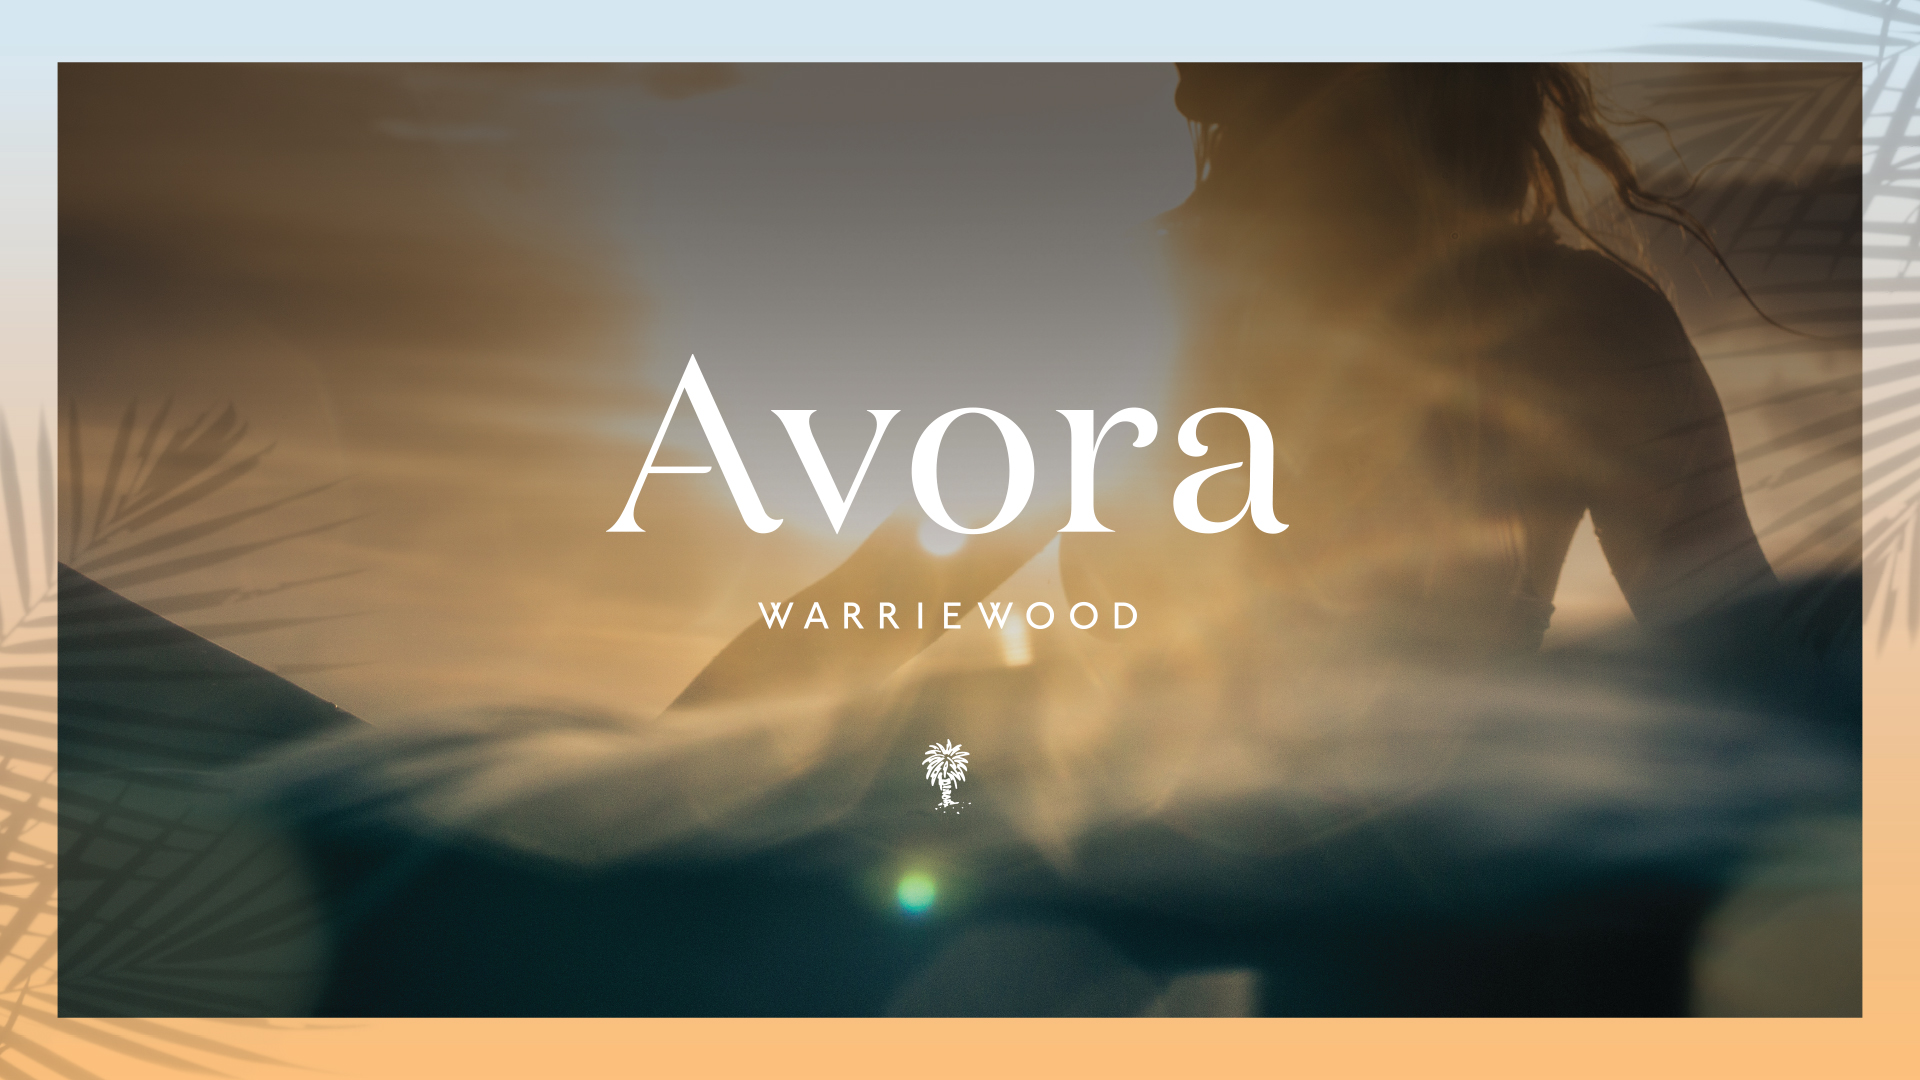 TNG-avora-warriewood.jpg